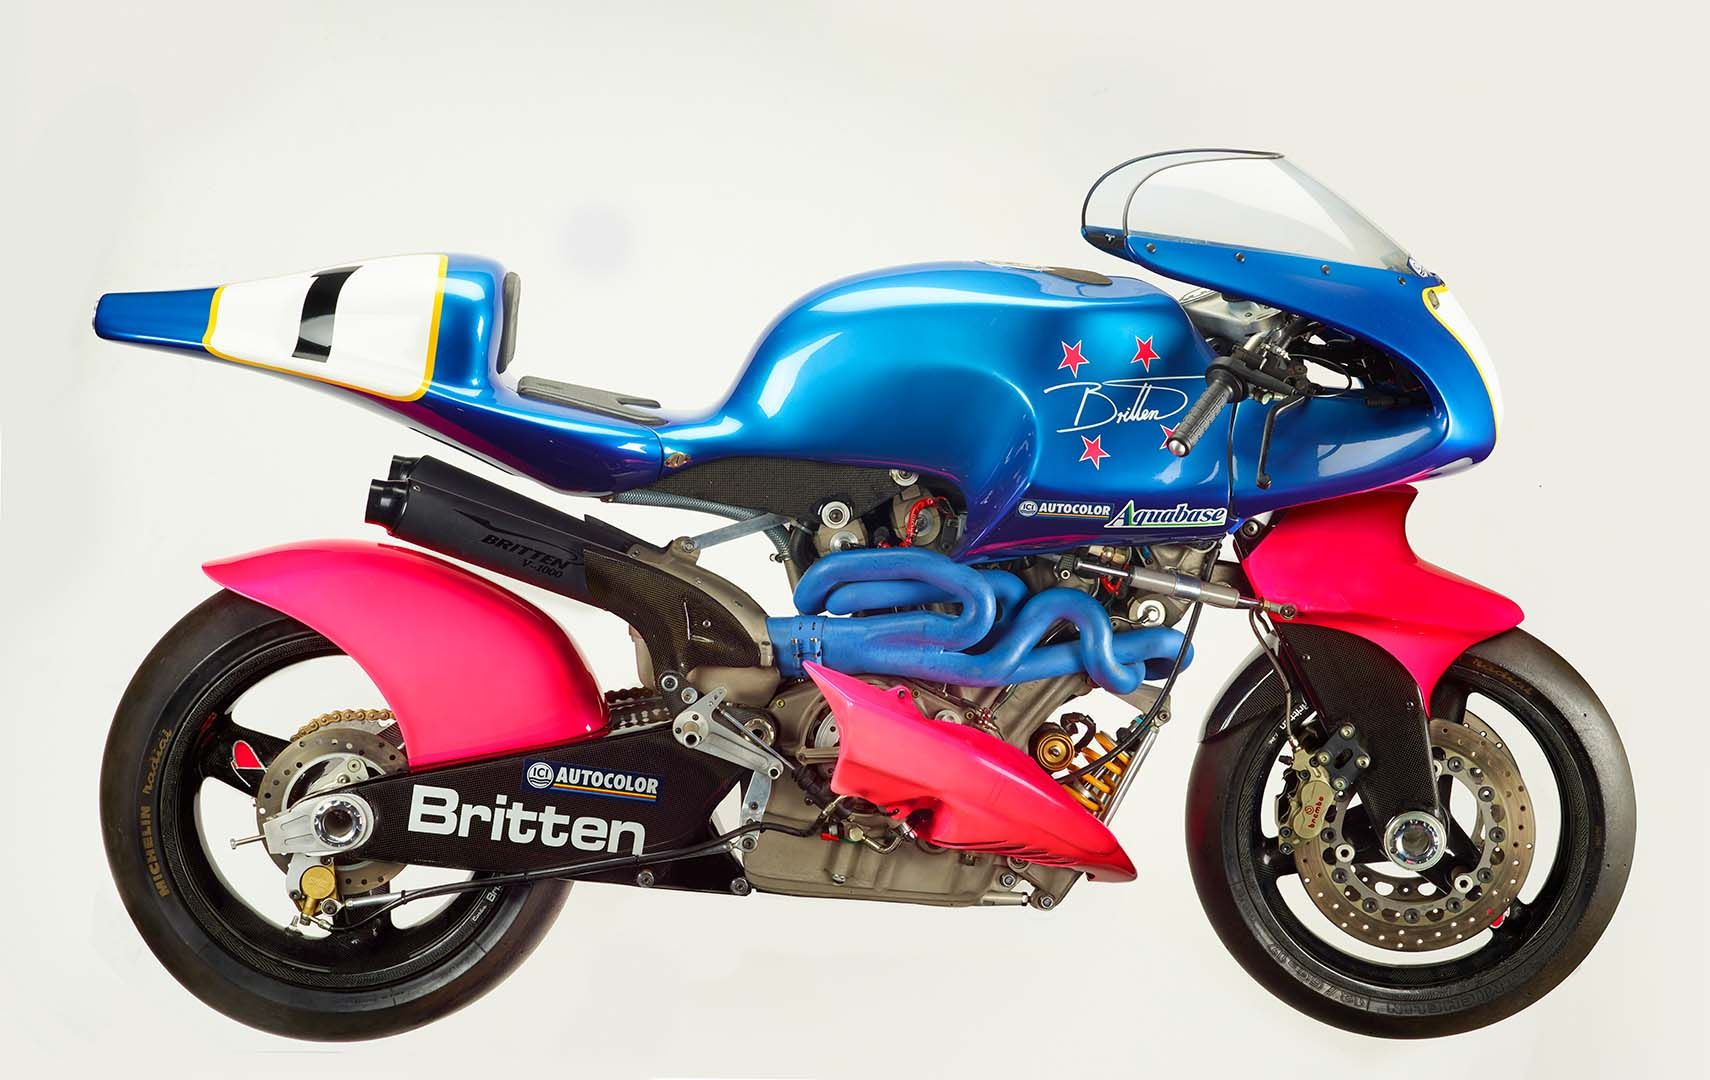 The Legendary Britten V1000 Is Just One Of The Incredible Machines